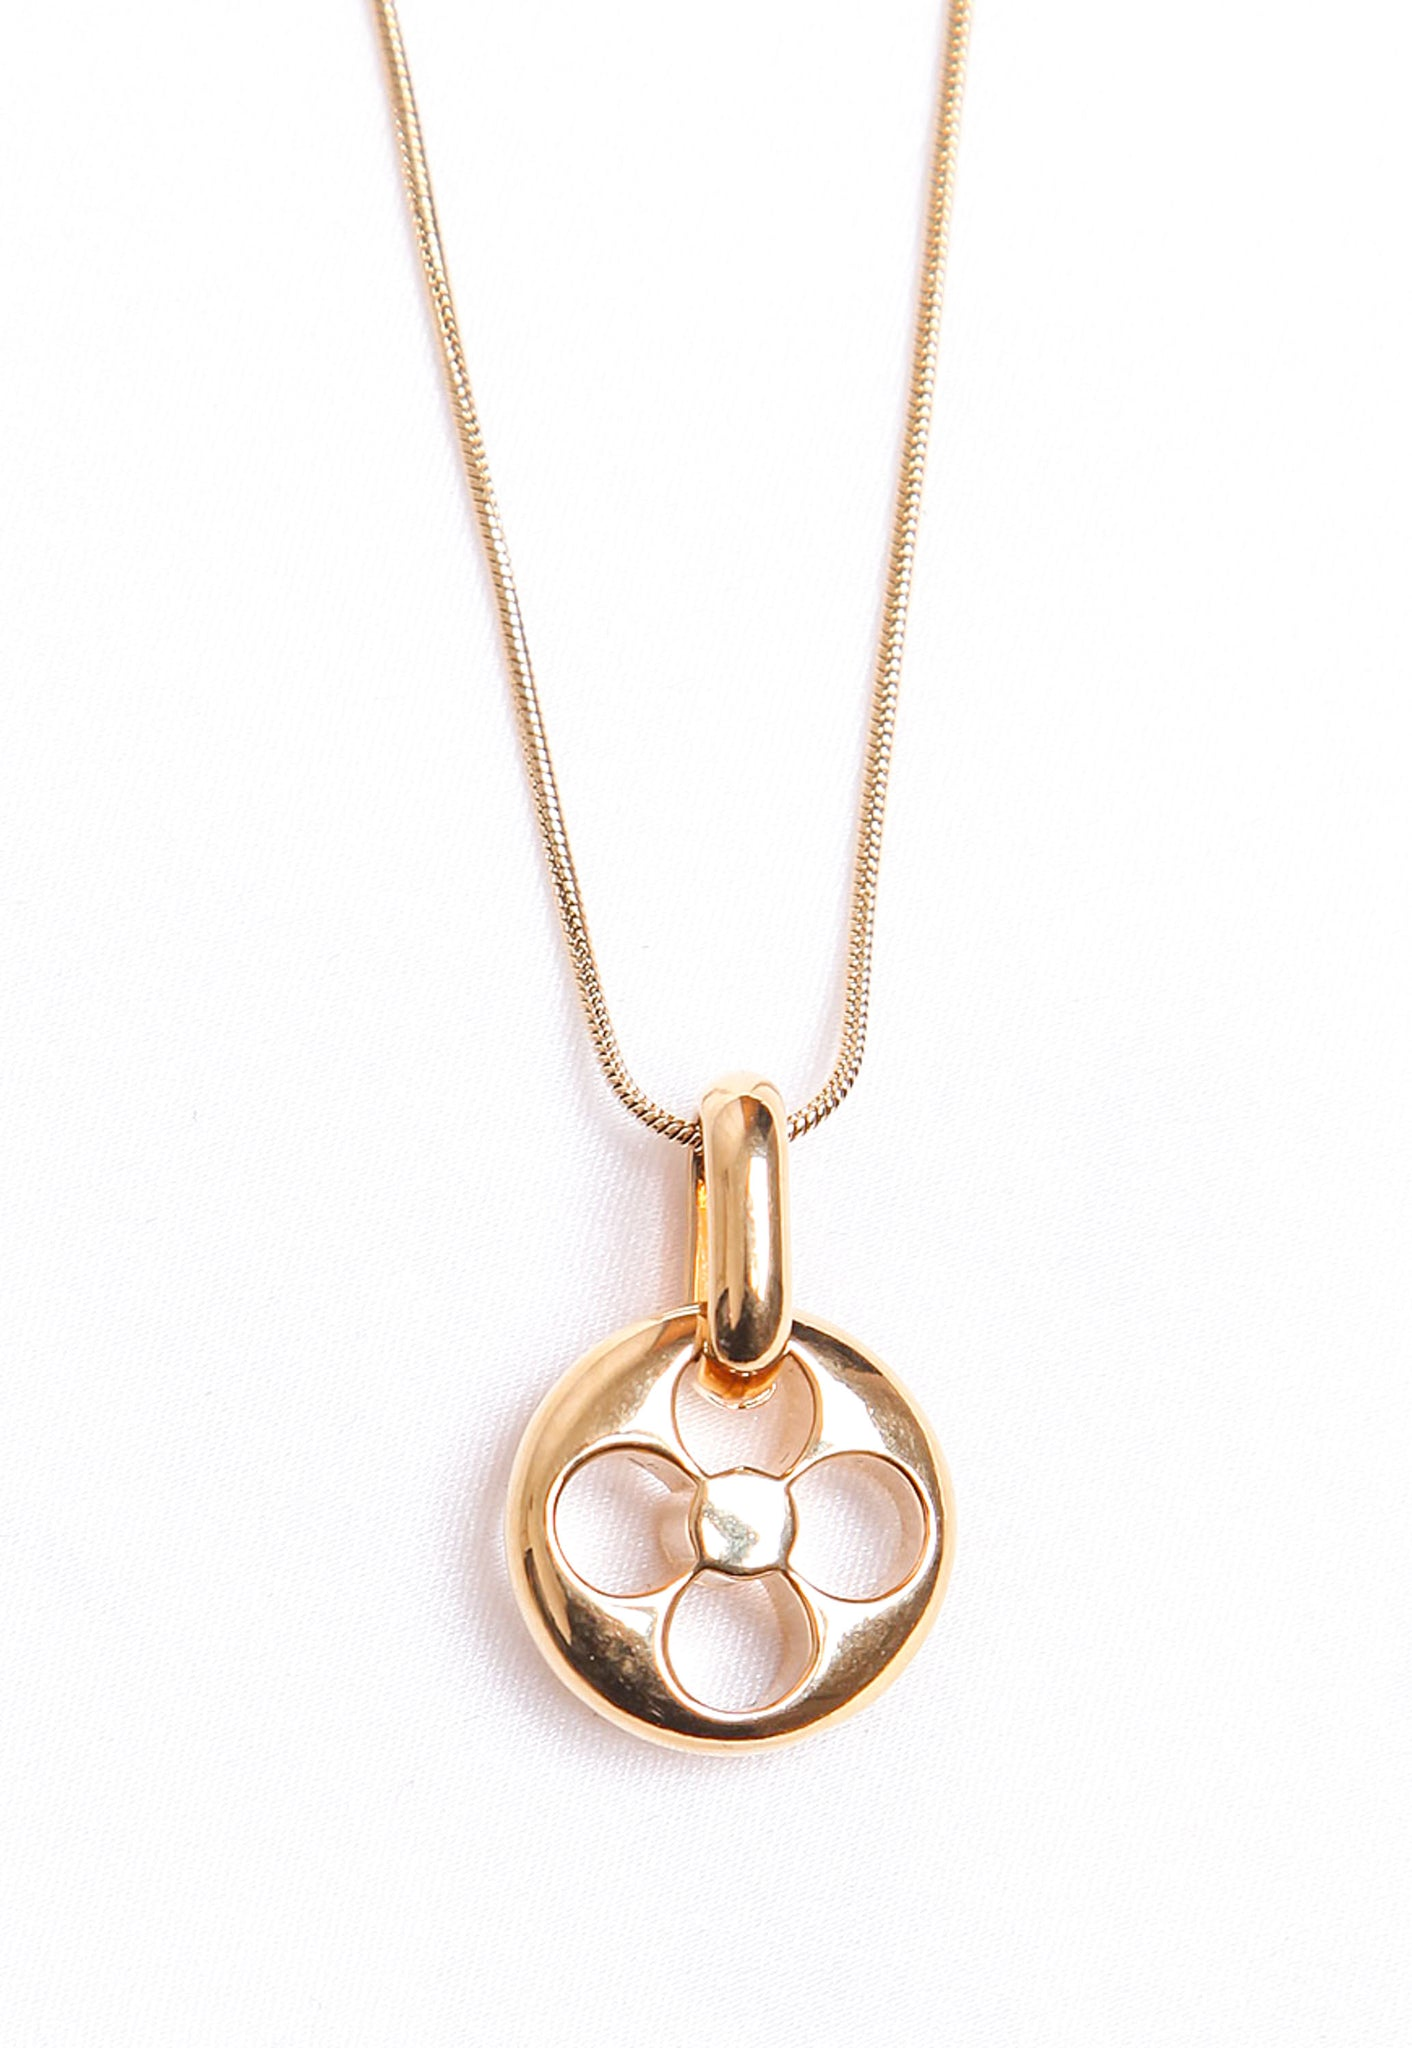 Reworked Louis Vuitton Gold Round Flower Pendant Necklace